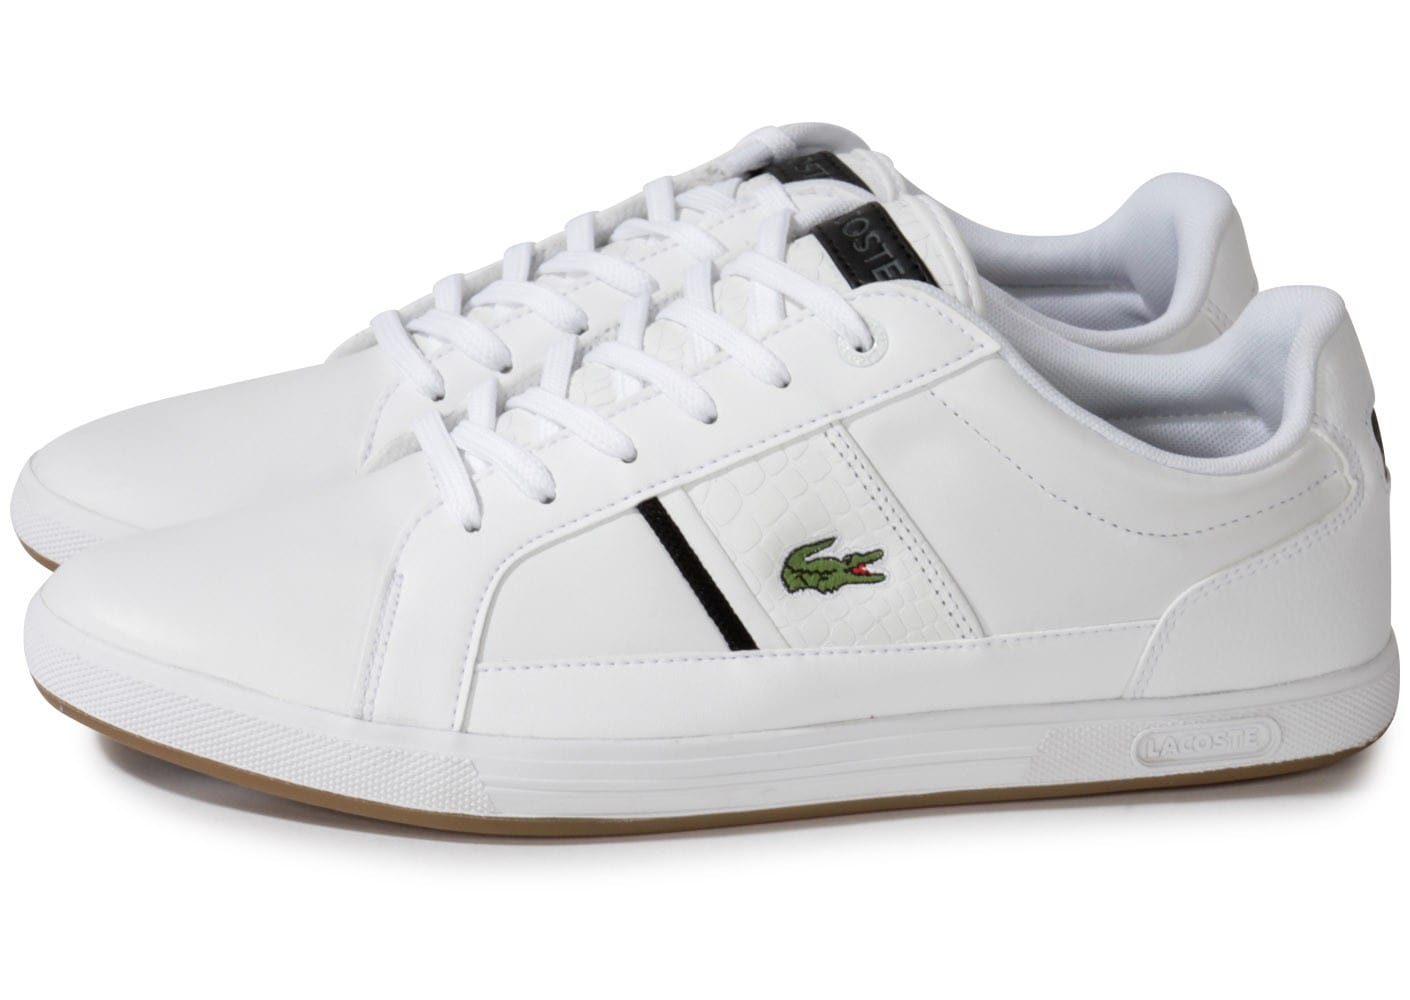 lacoste europa cuir blanche chaussures homme chausport. Black Bedroom Furniture Sets. Home Design Ideas